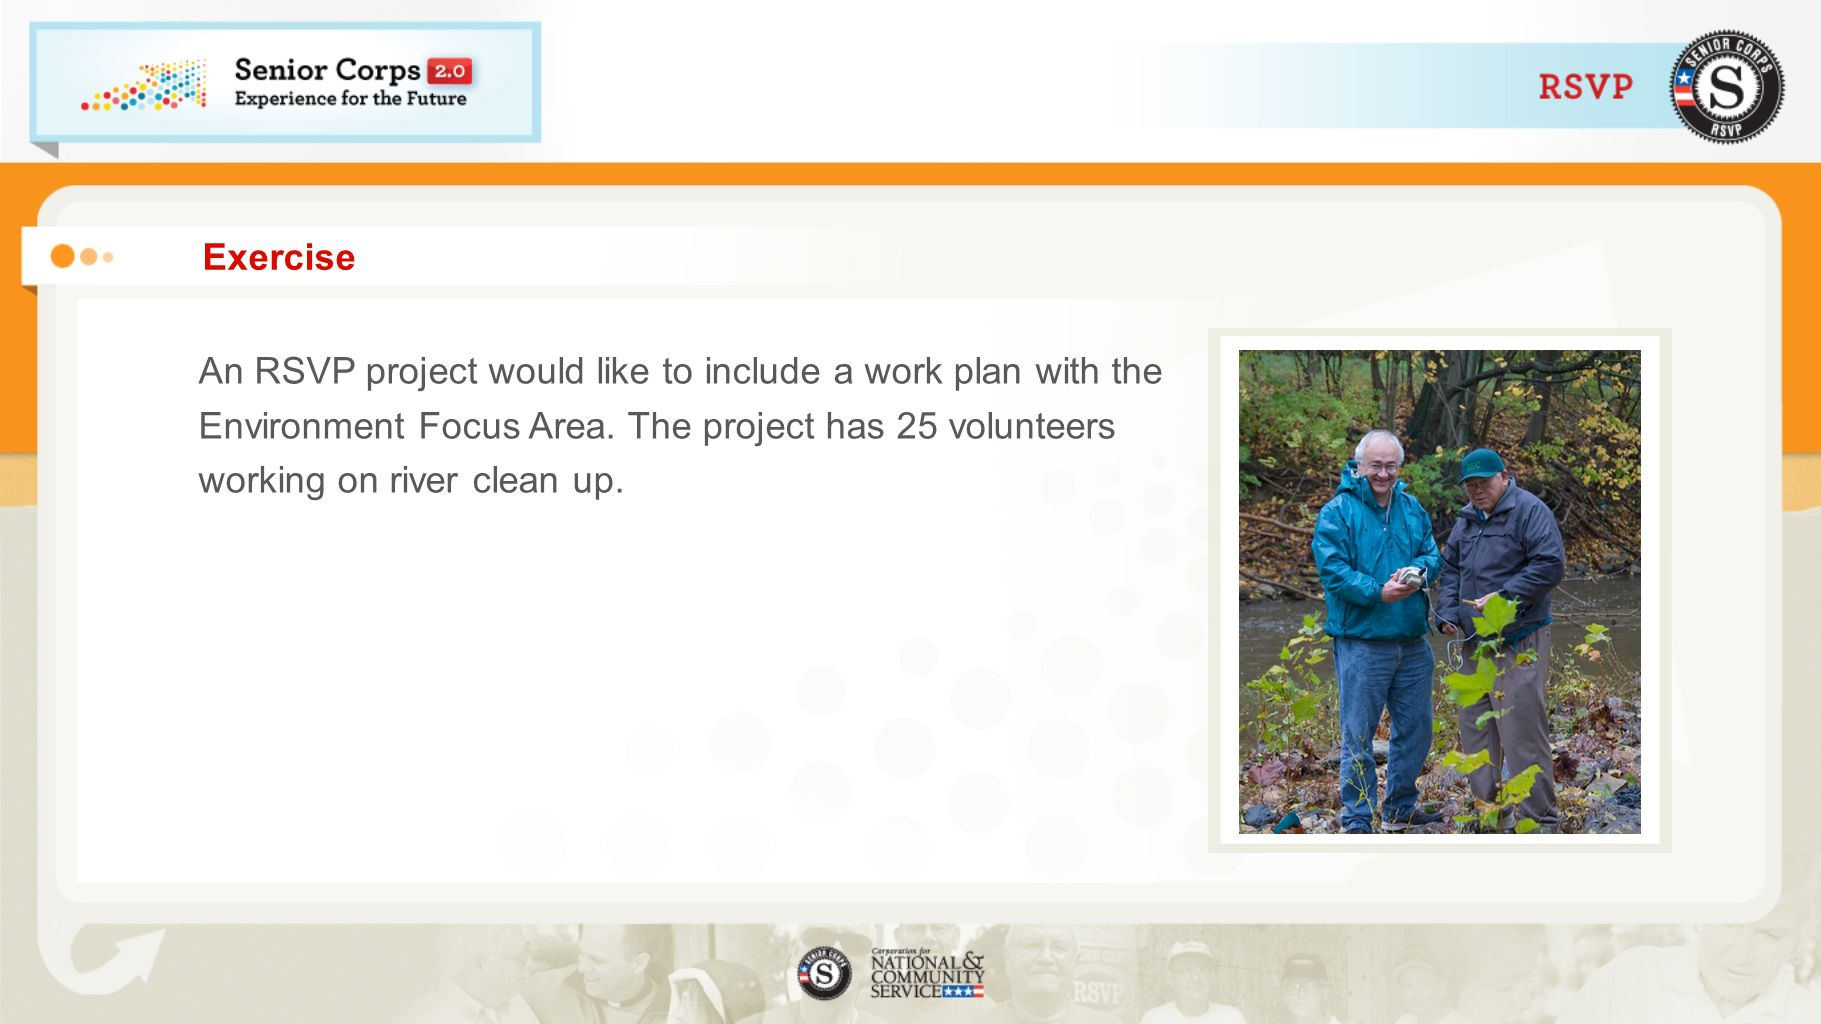 Exercise An RSVP project would like to include a work plan with the Environment Focus Area.